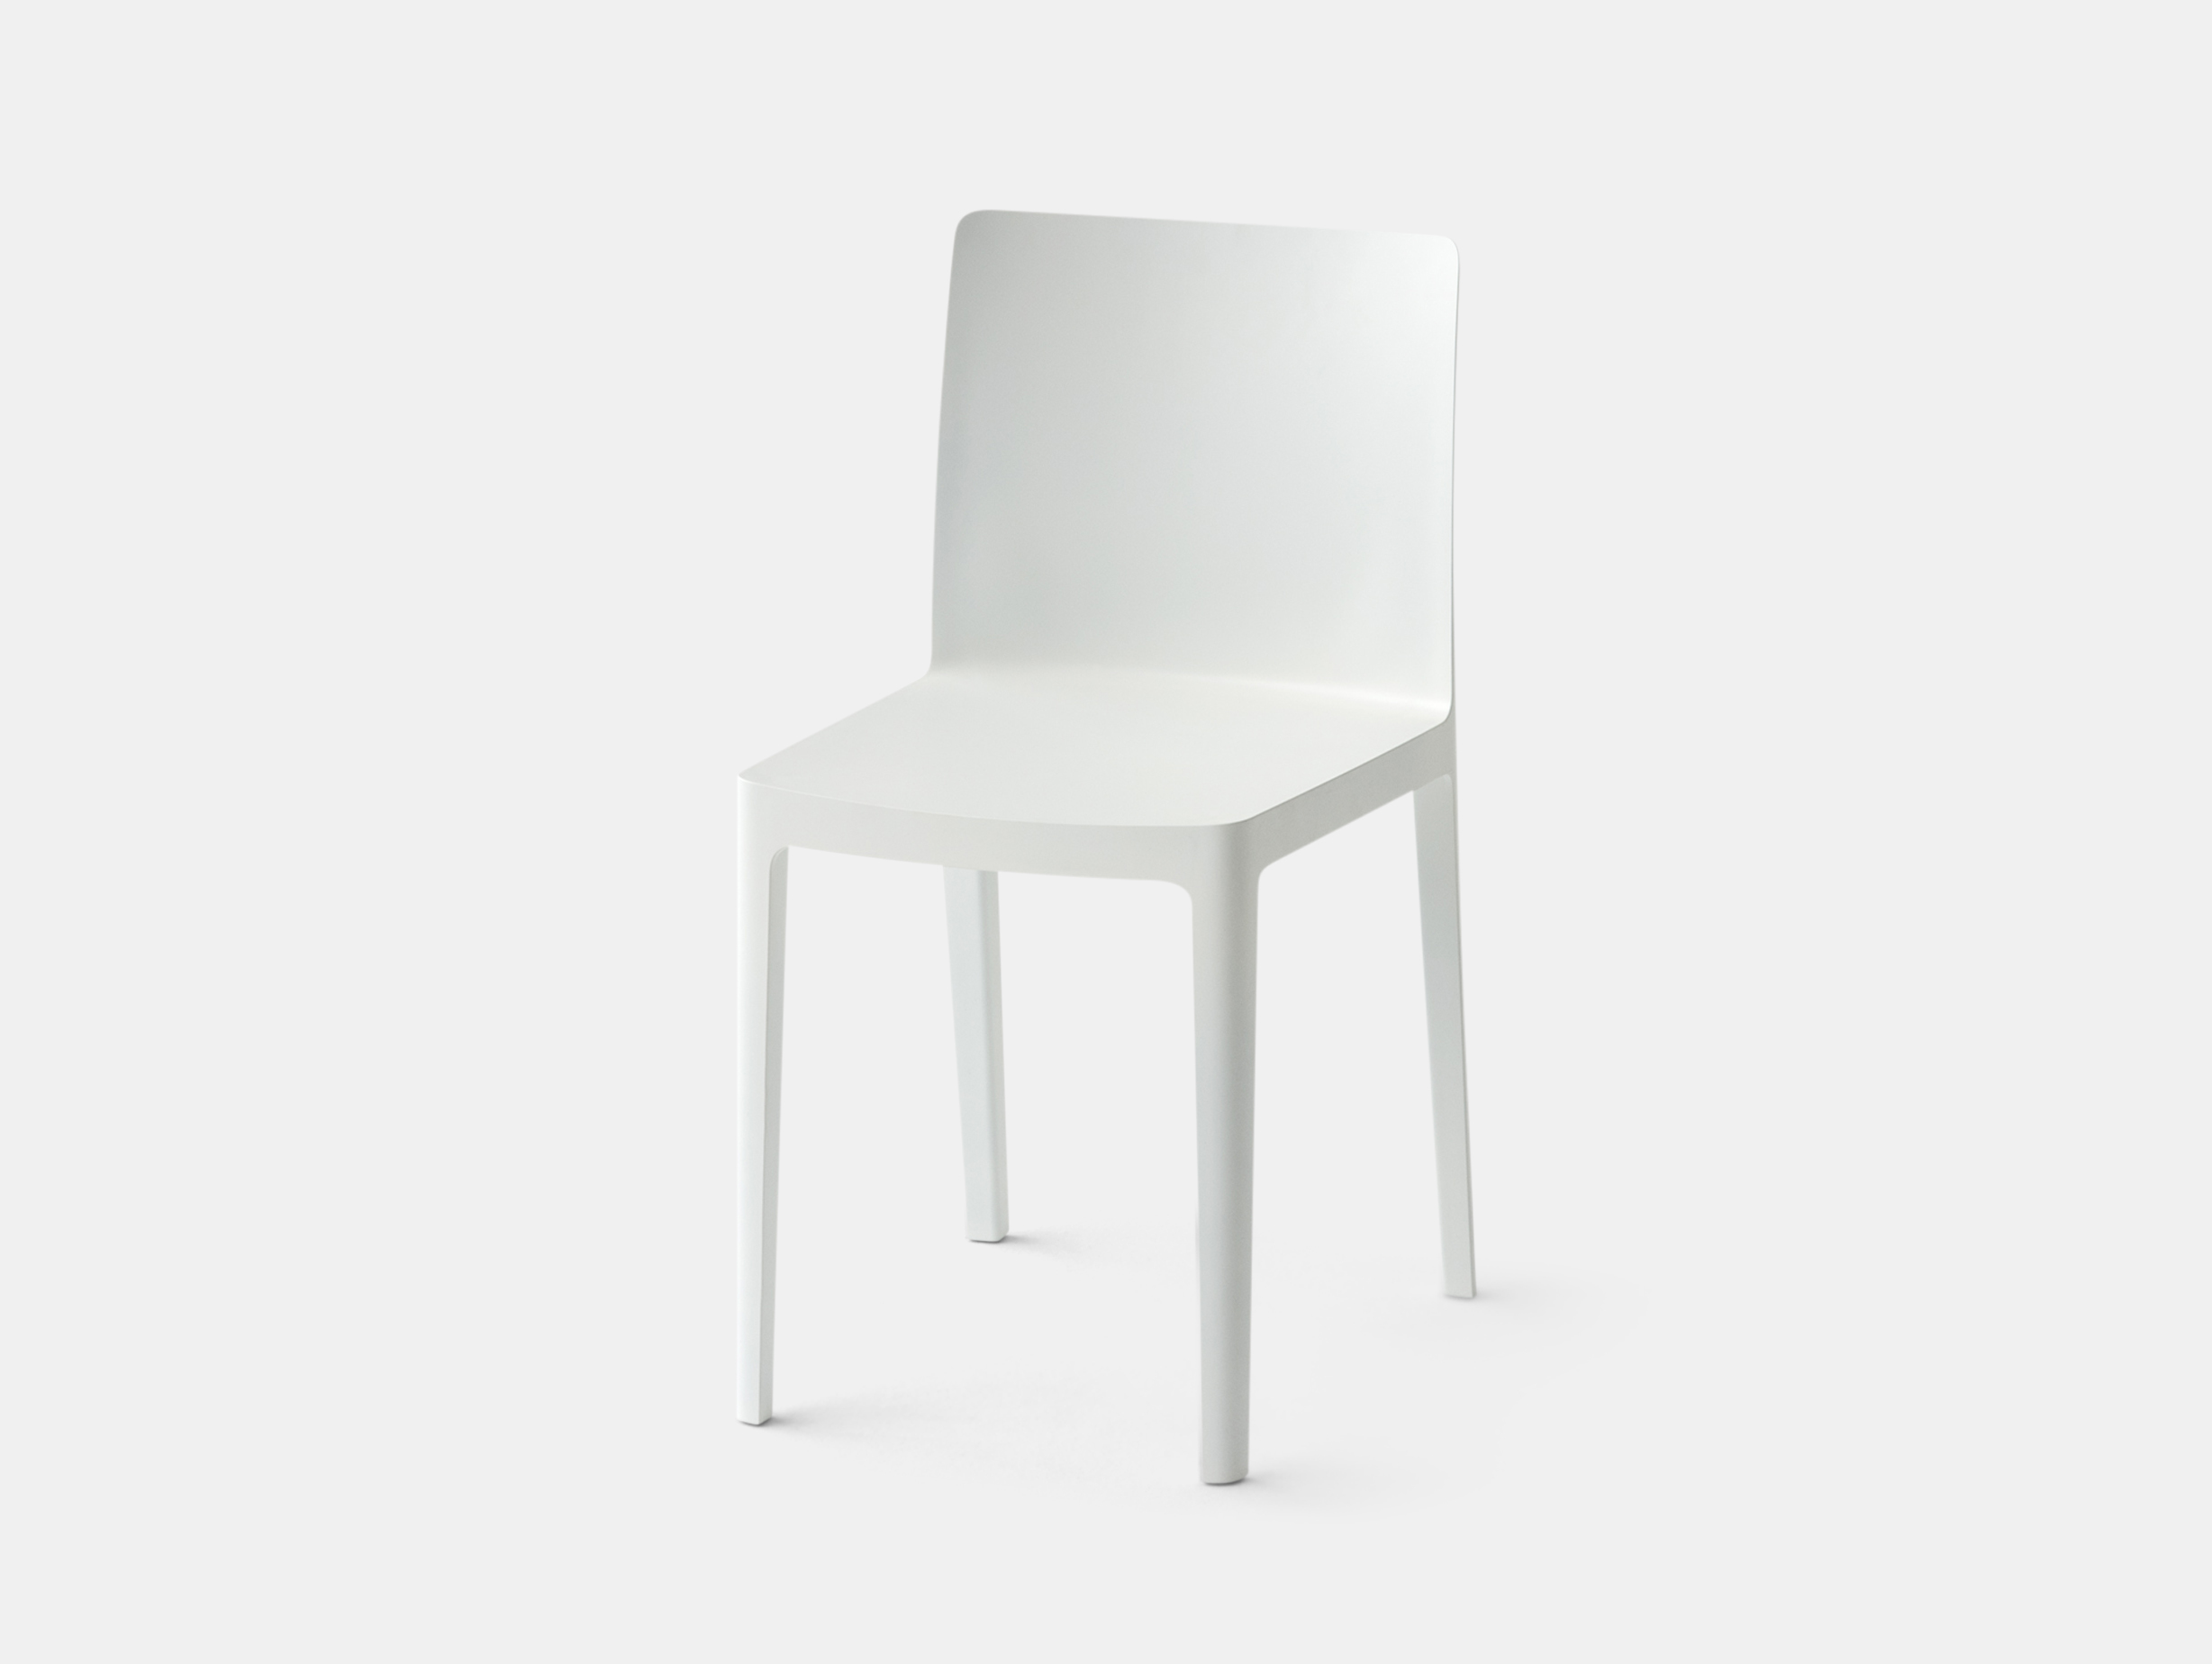 Elementaire Side Chair image 2